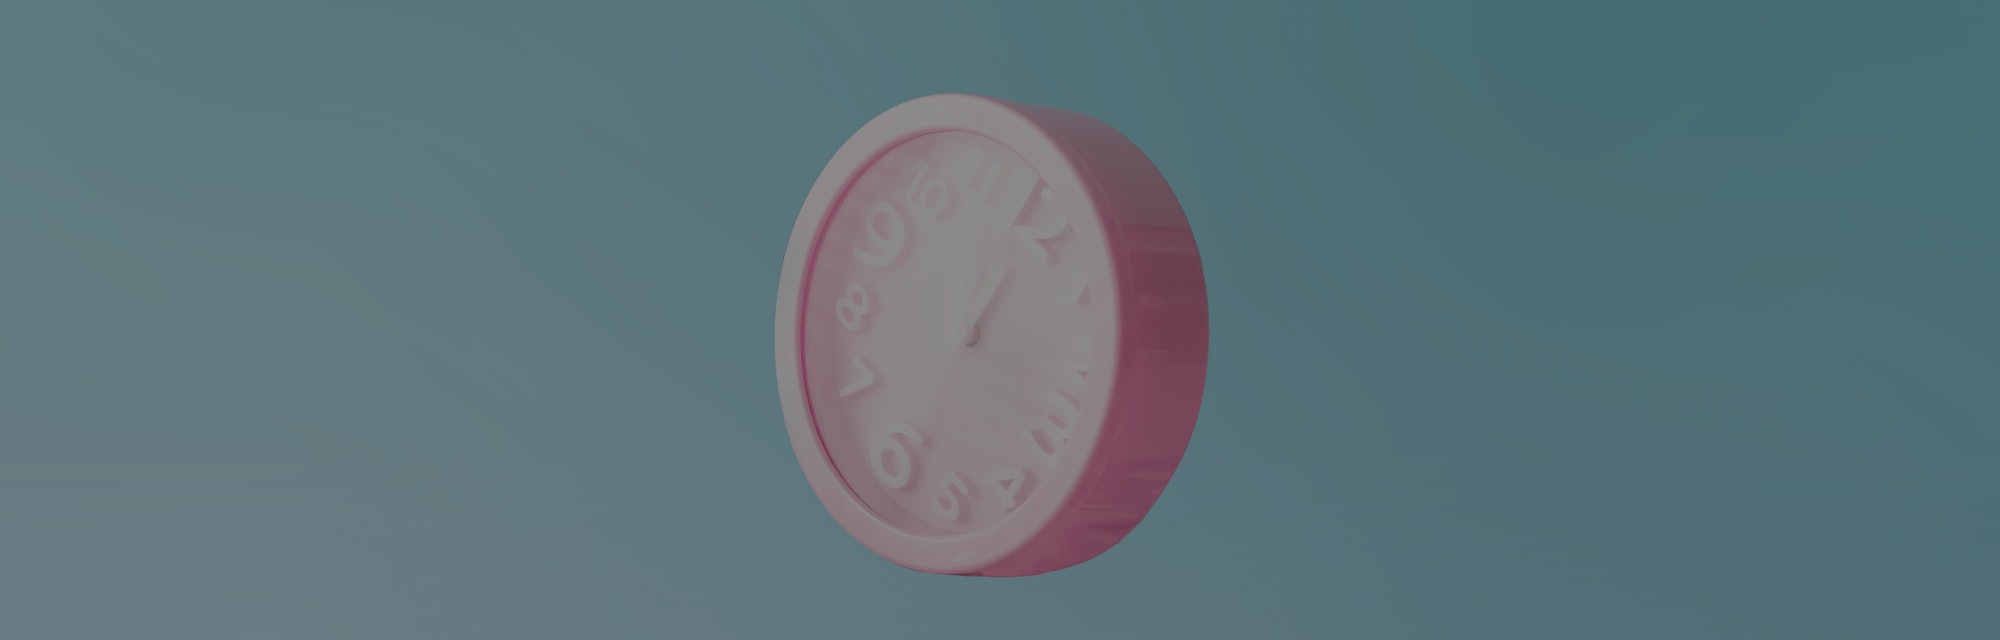 Pastel pink wall clocks on blue backdrop falling down. Time concept. Minimal composition.